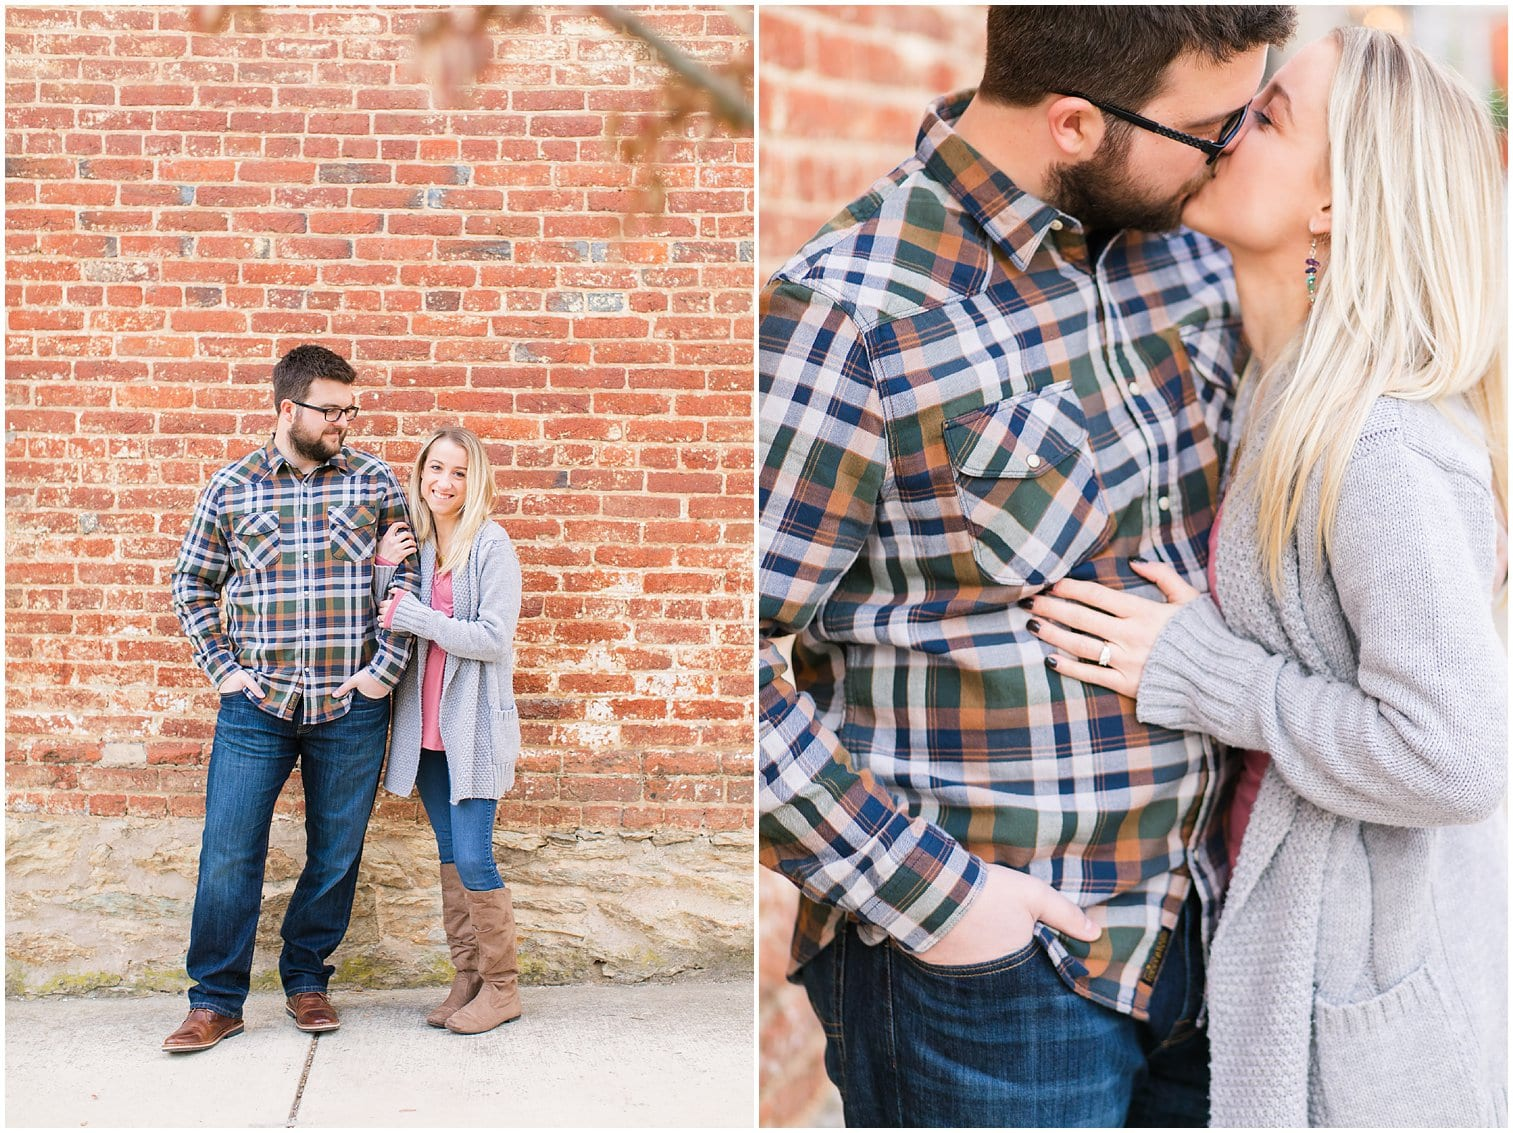 Downtown Middleburg Engagement Photos Virginia Wedding Photographer Megan Kelsey Photography Blair & Mike-30.jpg